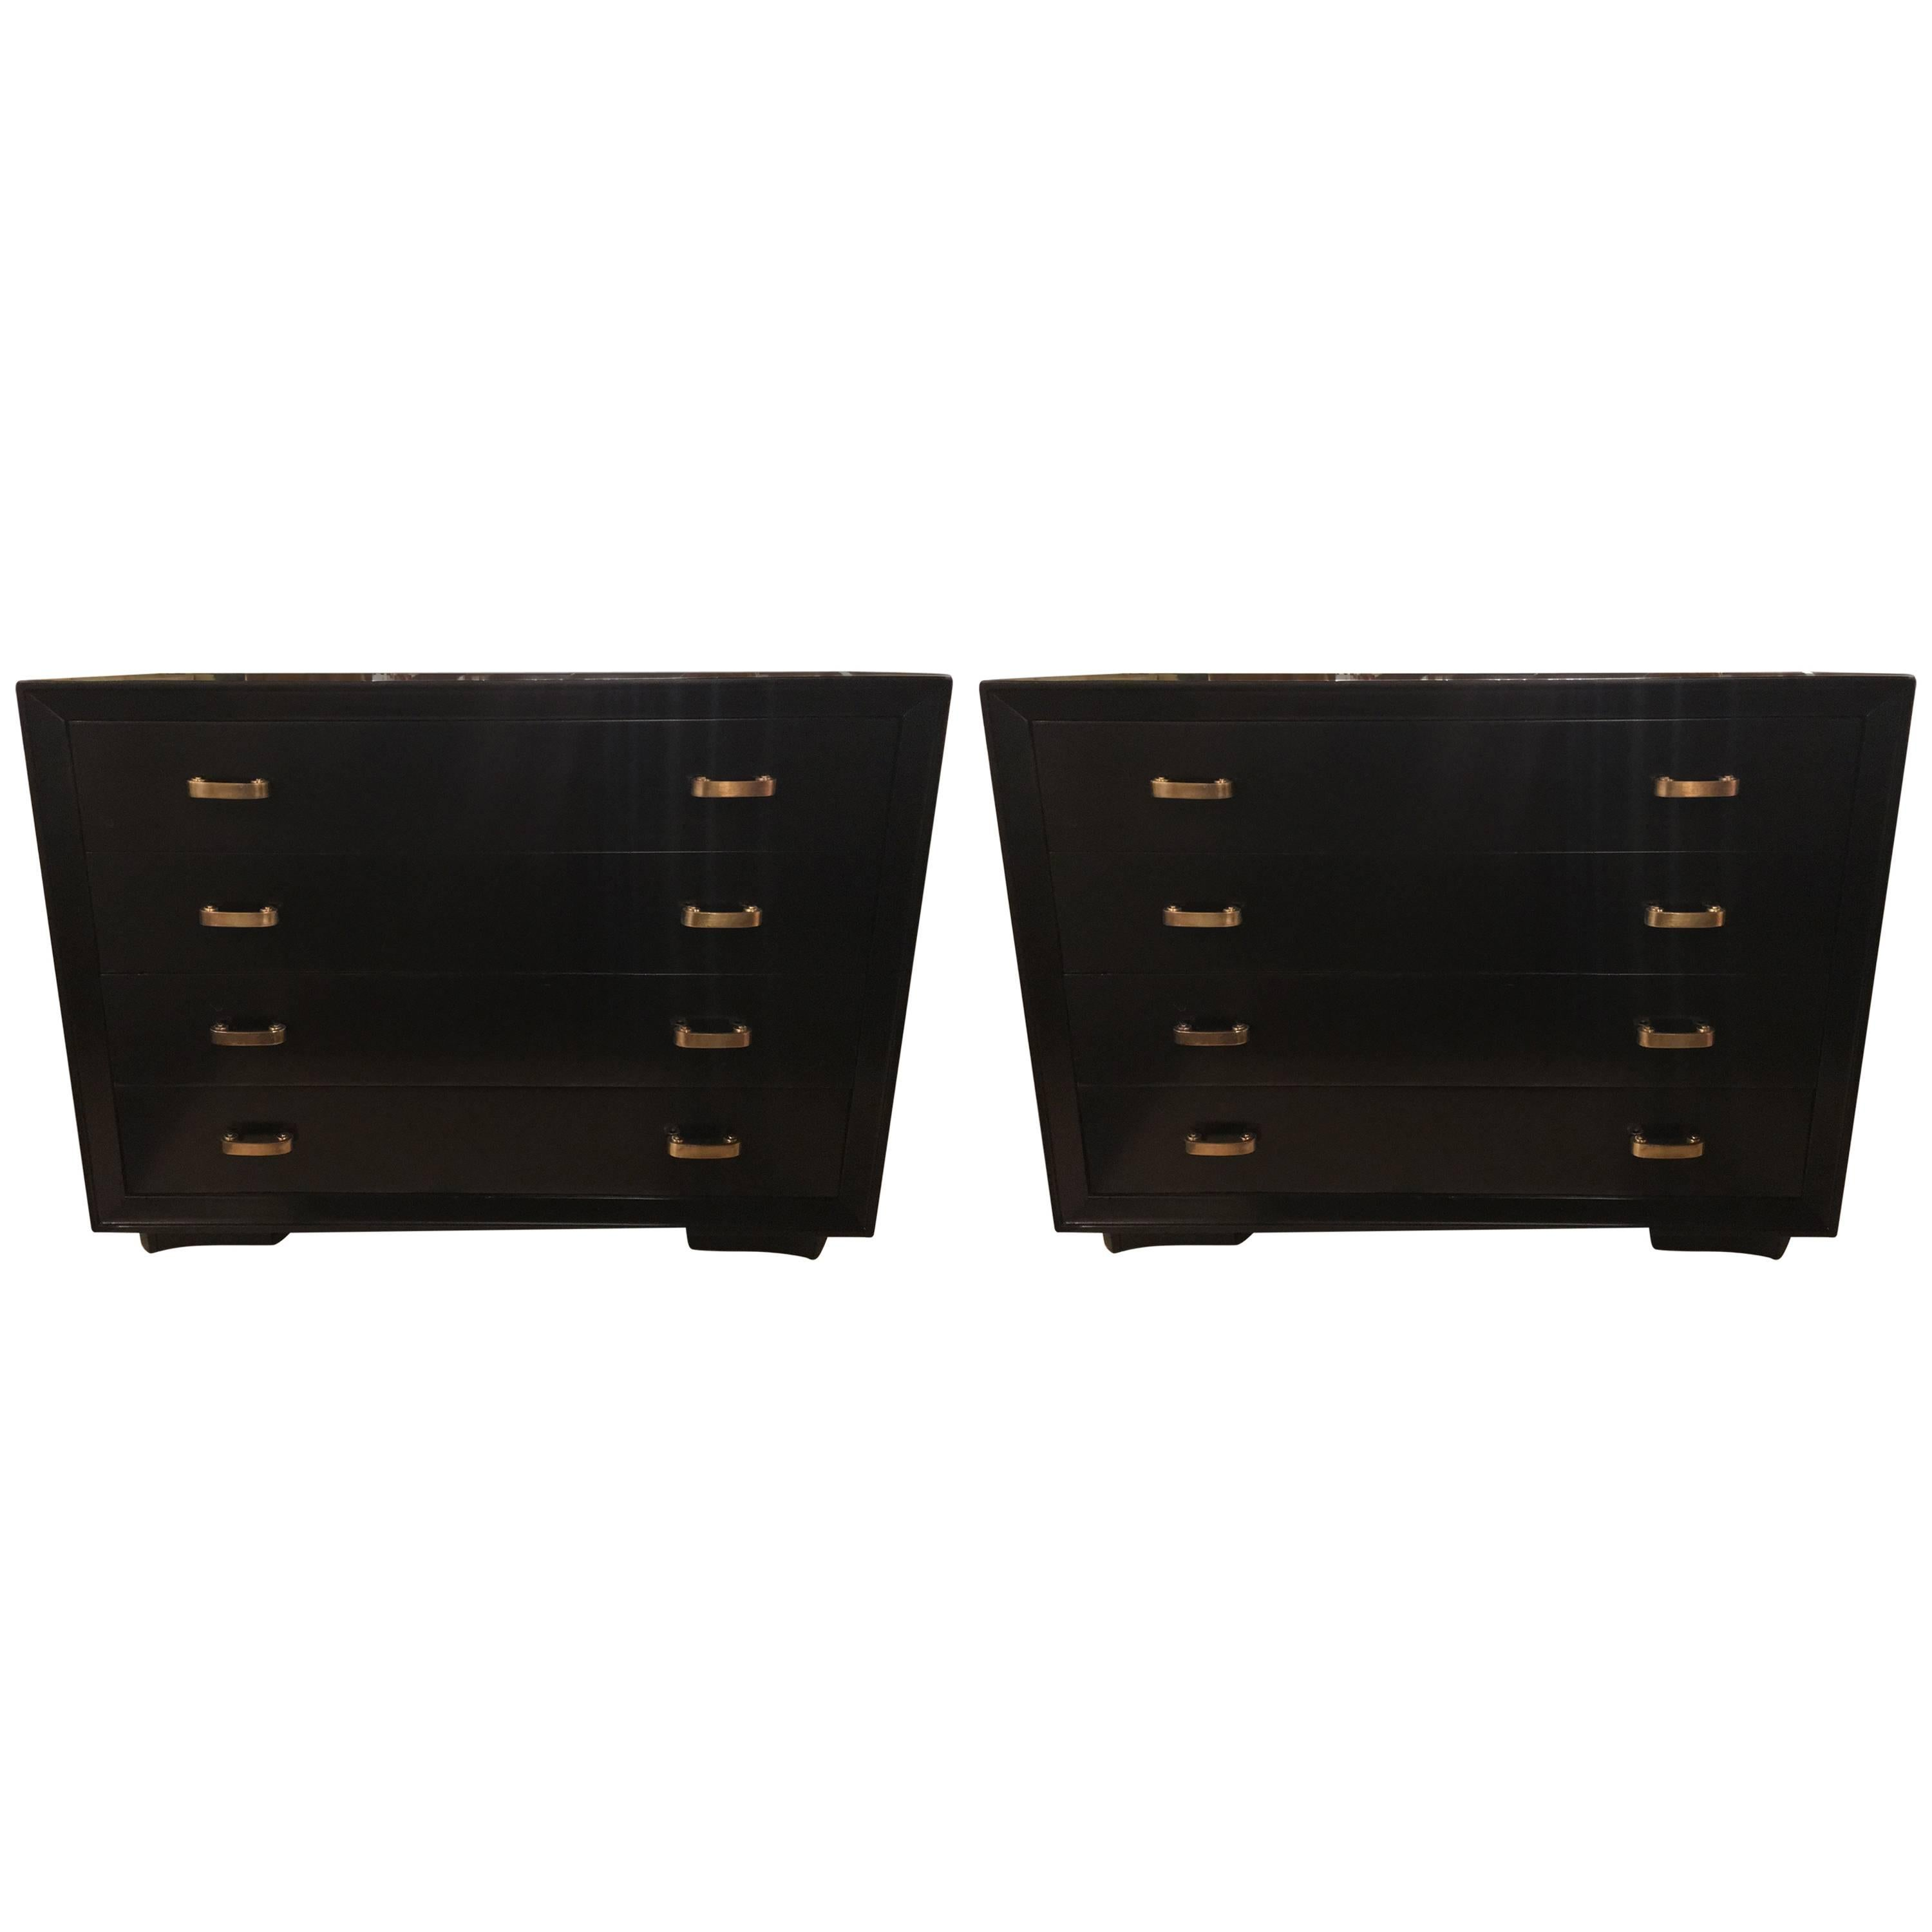 Custom Pair Of Chests / Commodes In Ebony Finish By Berkey And Gay